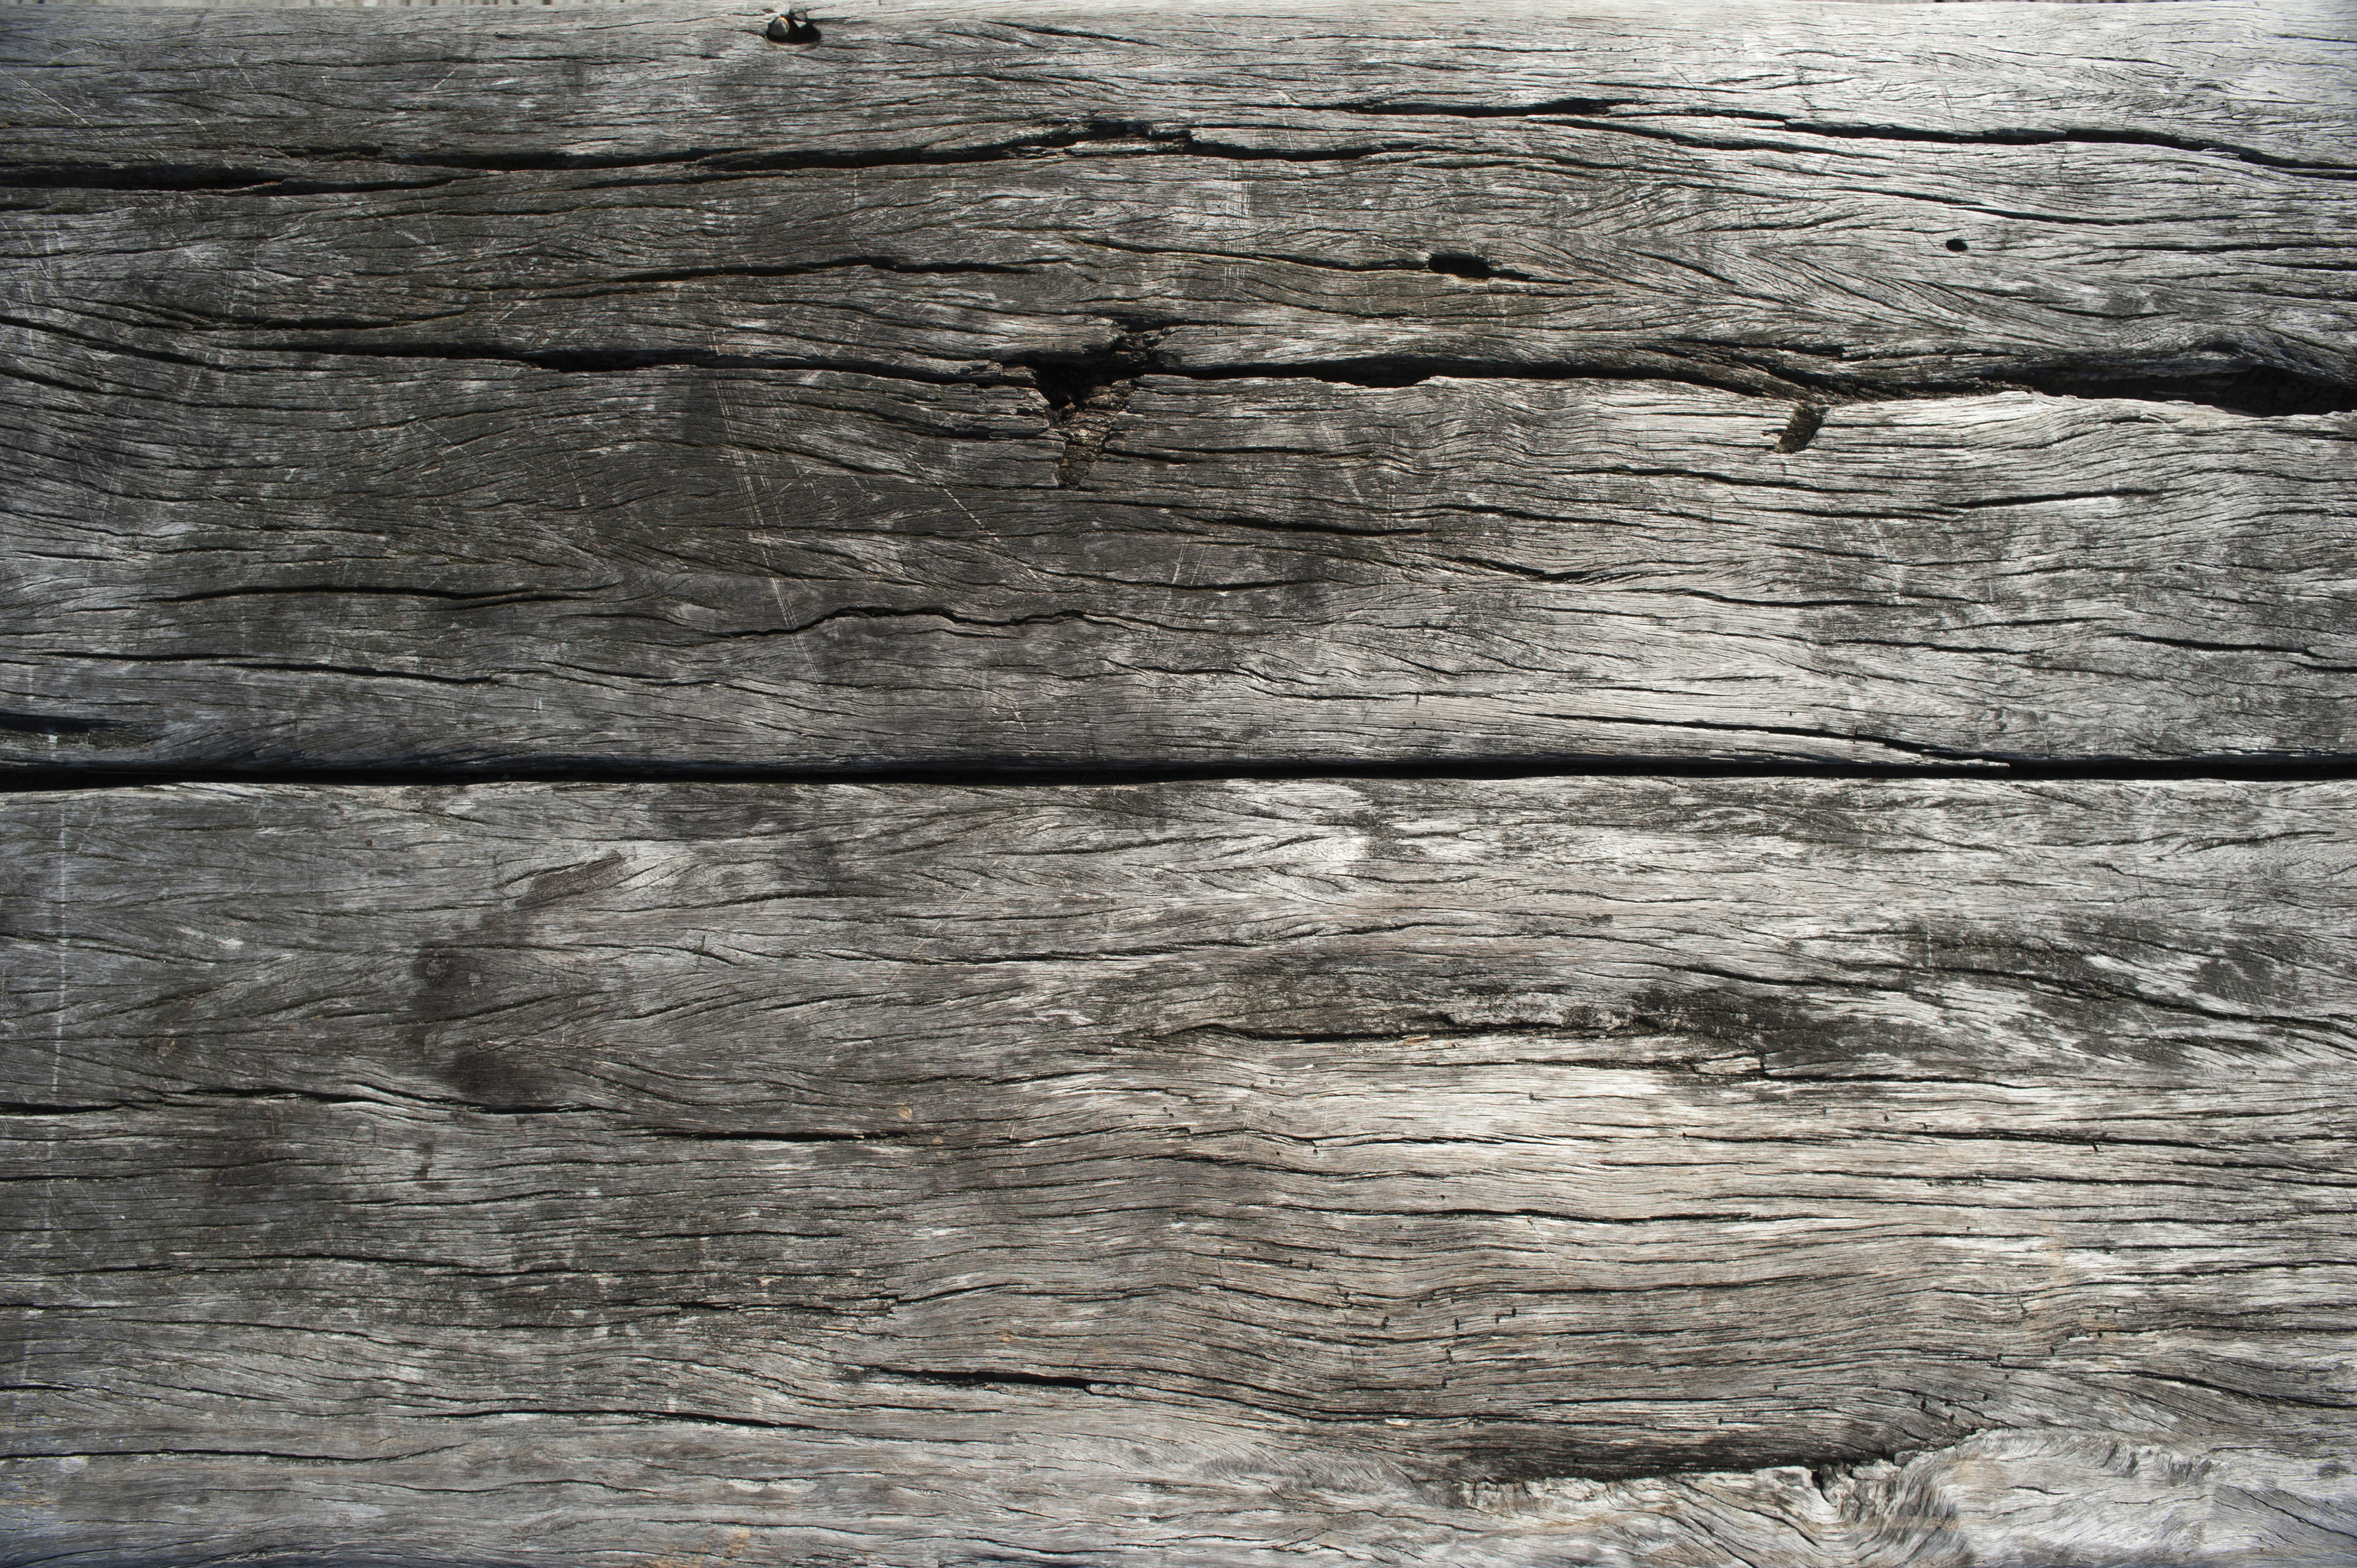 Greyish Wood Image Of Dried Weathered Wooden Boards Texture Freebie